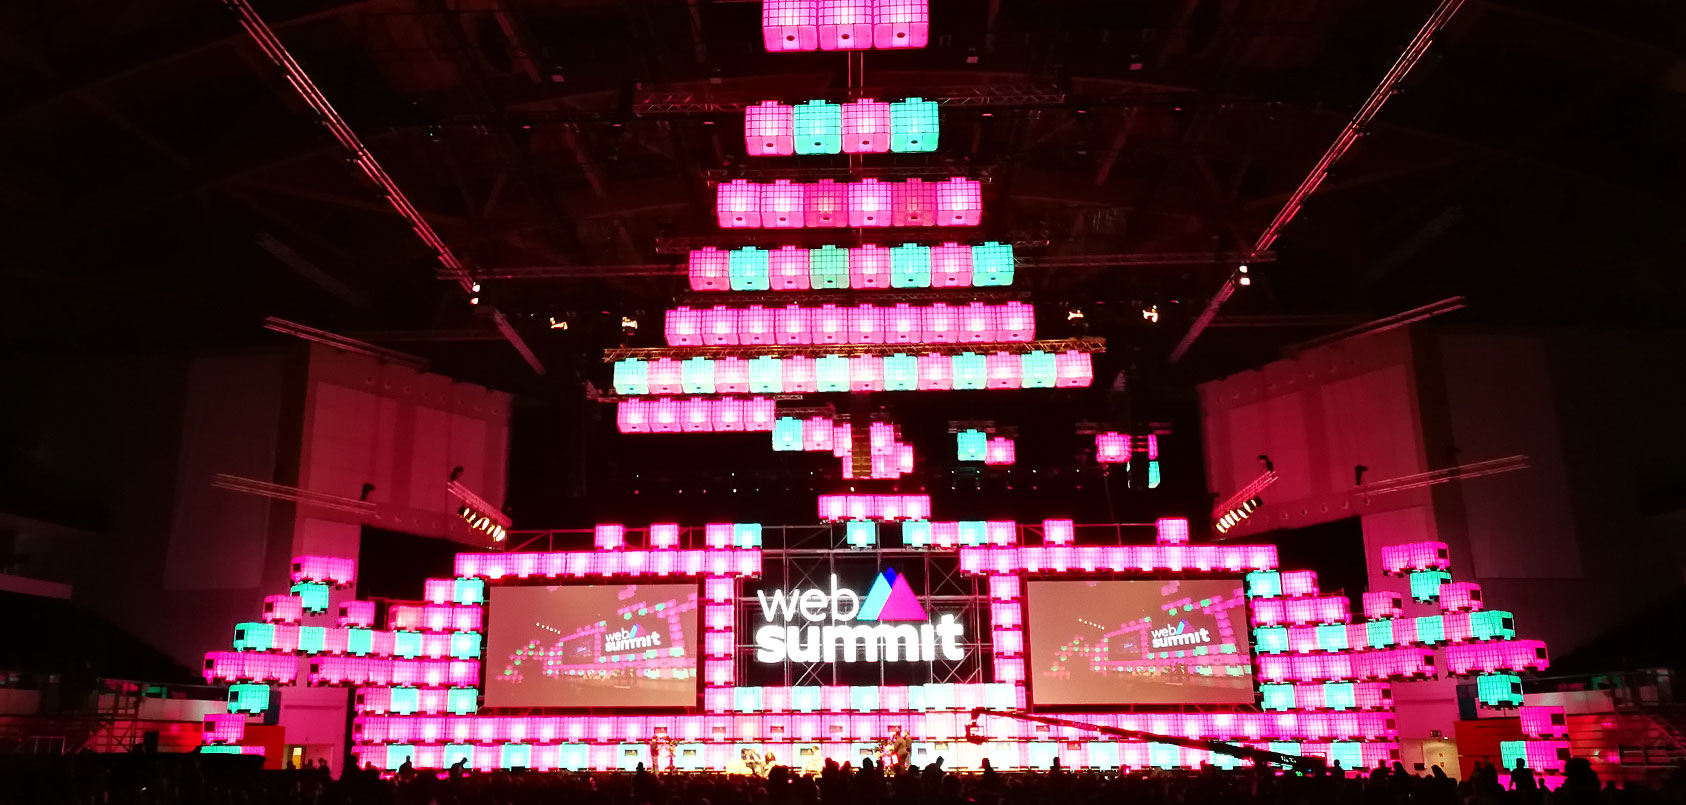 WebSummit_main_stage_2